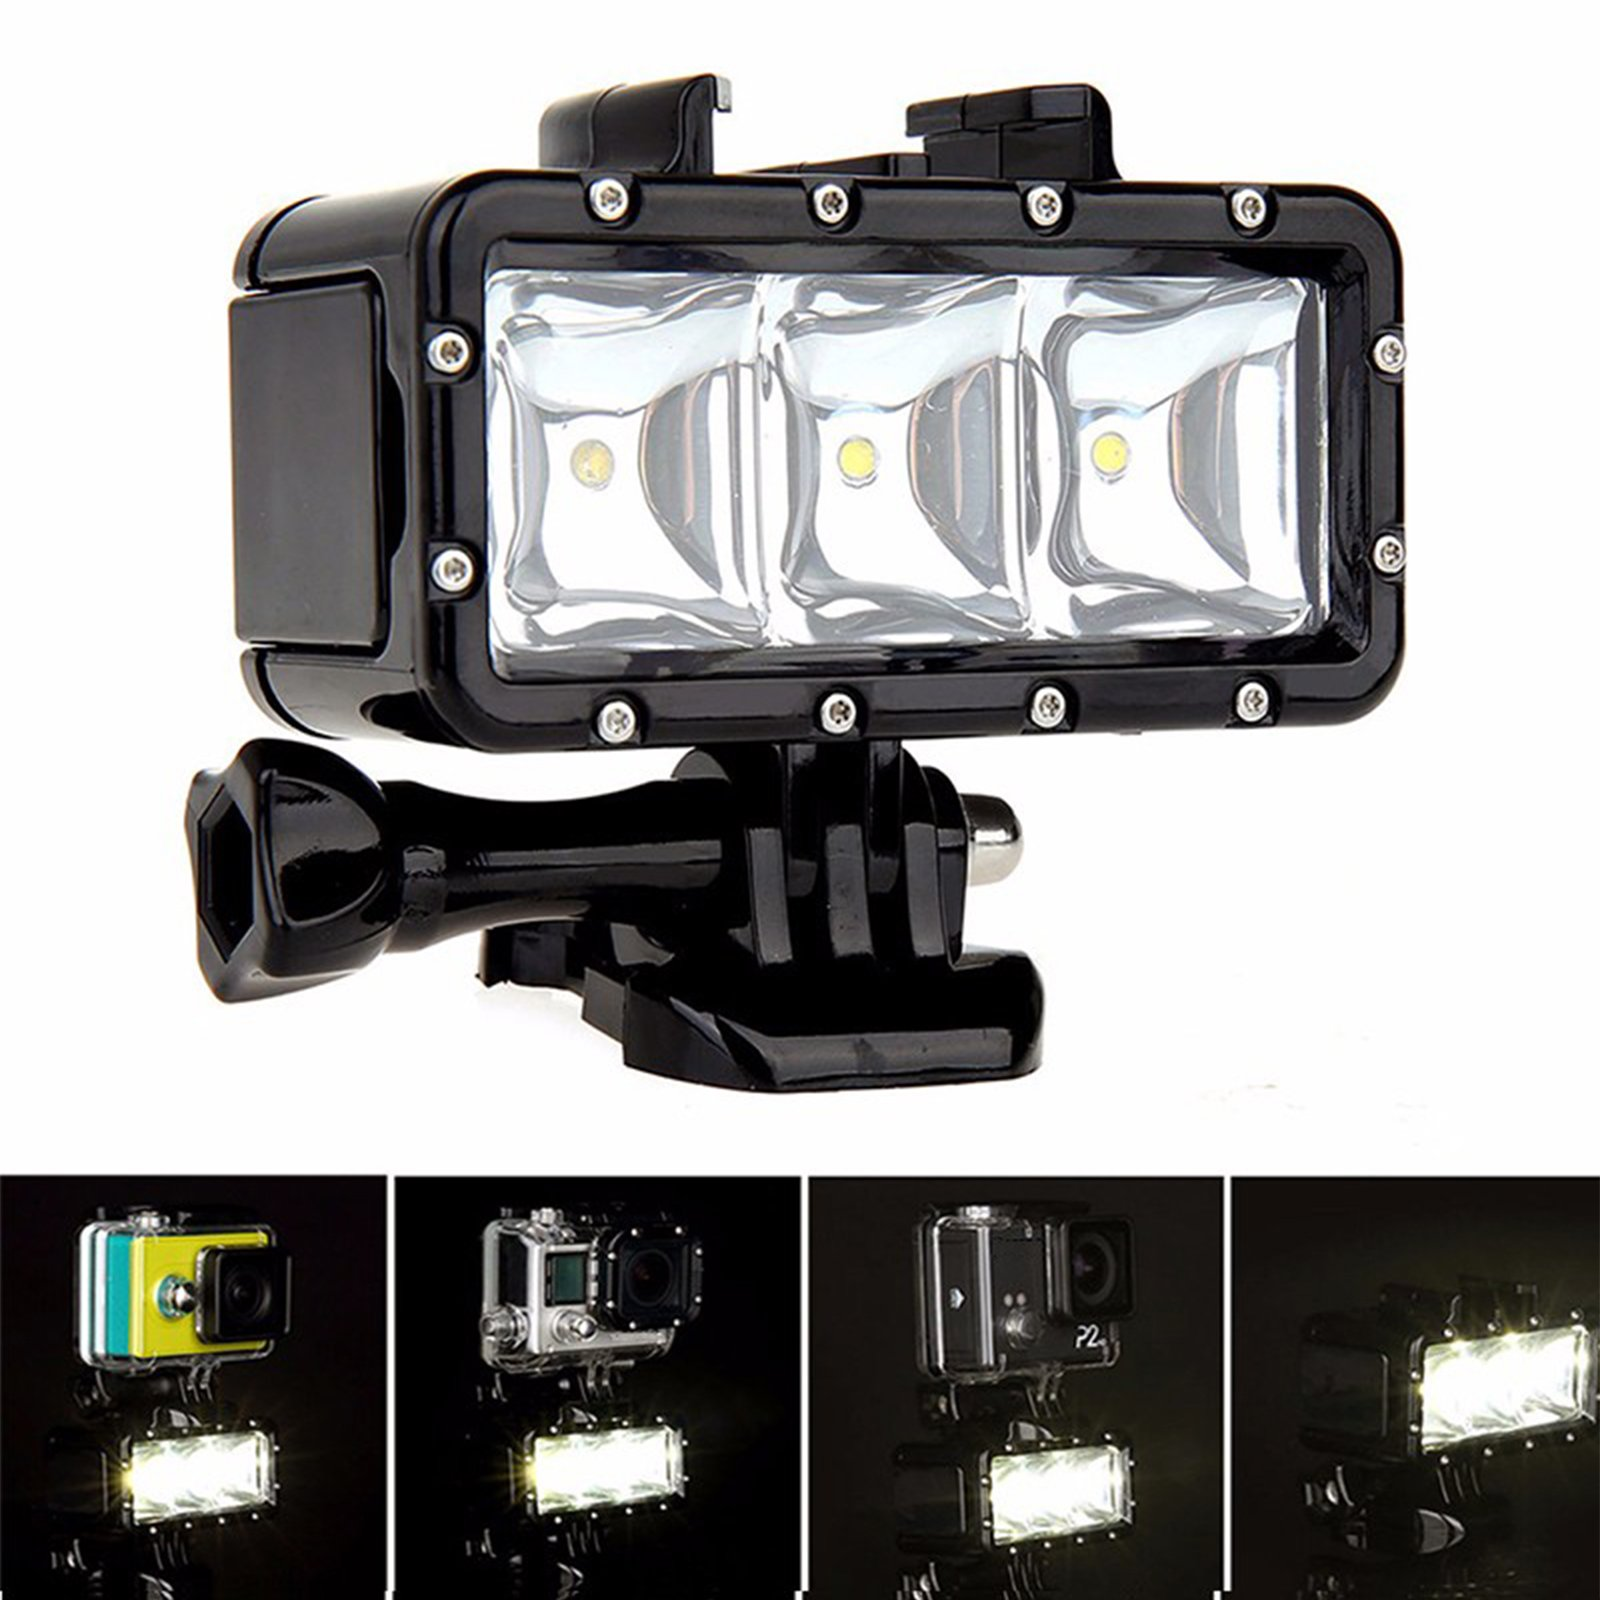 SHOOT Waterproof 30m Diving Light High Power Dimmable LED Underwater Fill Light for GoPro Hero 6/5/5S/4/4S/3+,Campark AKASO DBPOWER Crosstour SHOOT Camera with 1200mAh Built-in Rechargeable Battery by SHOOT (Image #7)